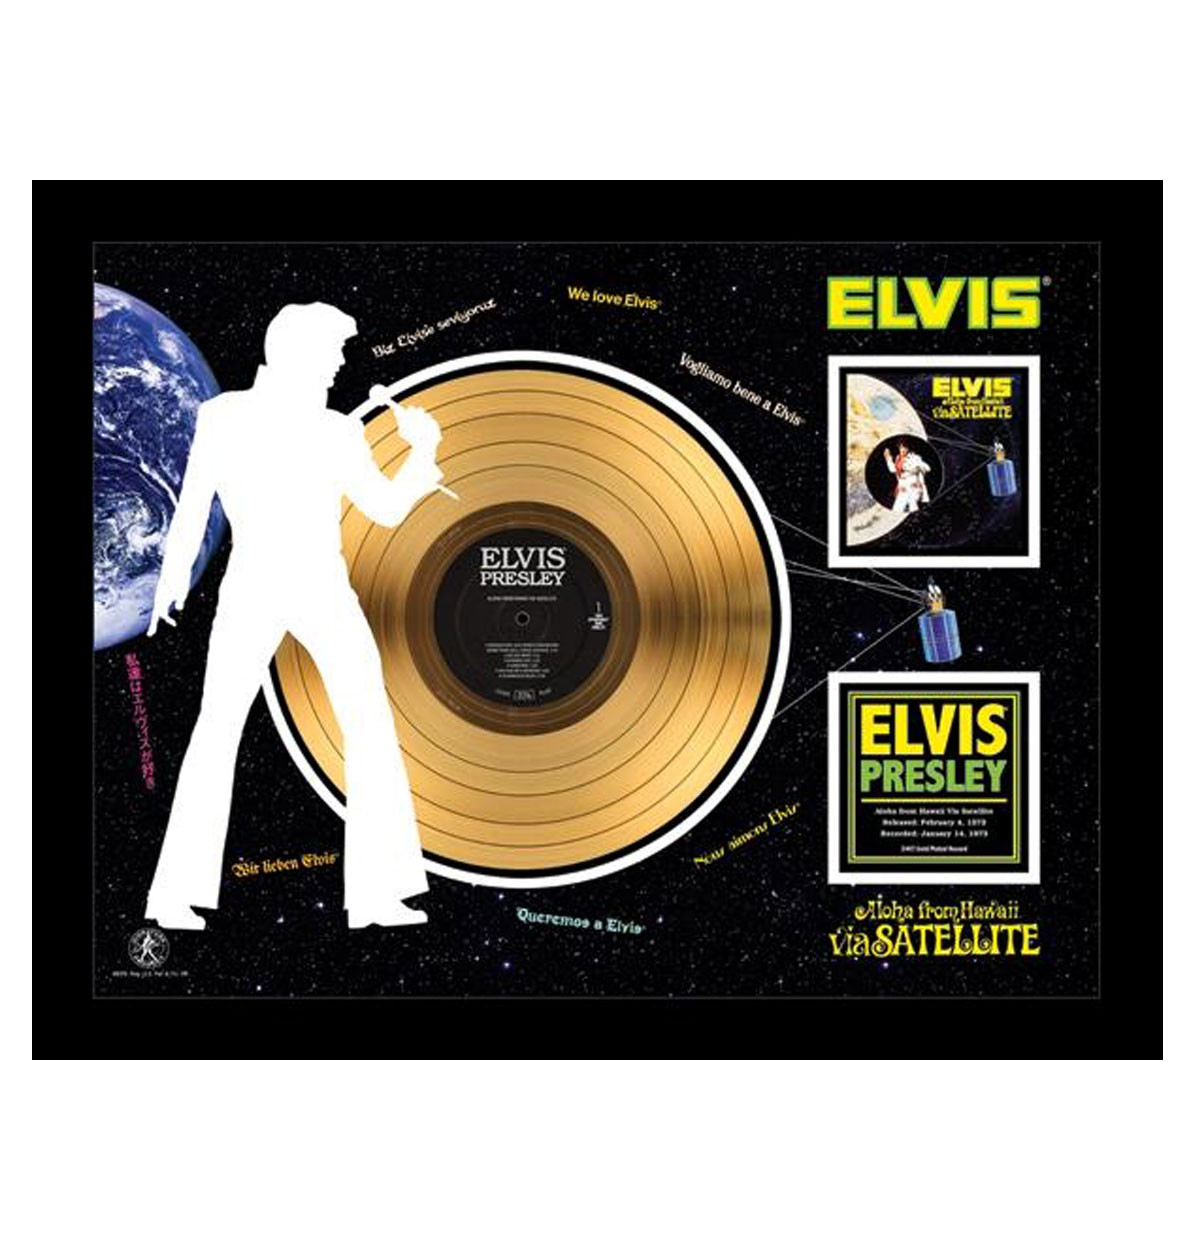 Elvis Presley Aloha From Hawaii via Satellite Gouden Plaat 24KT